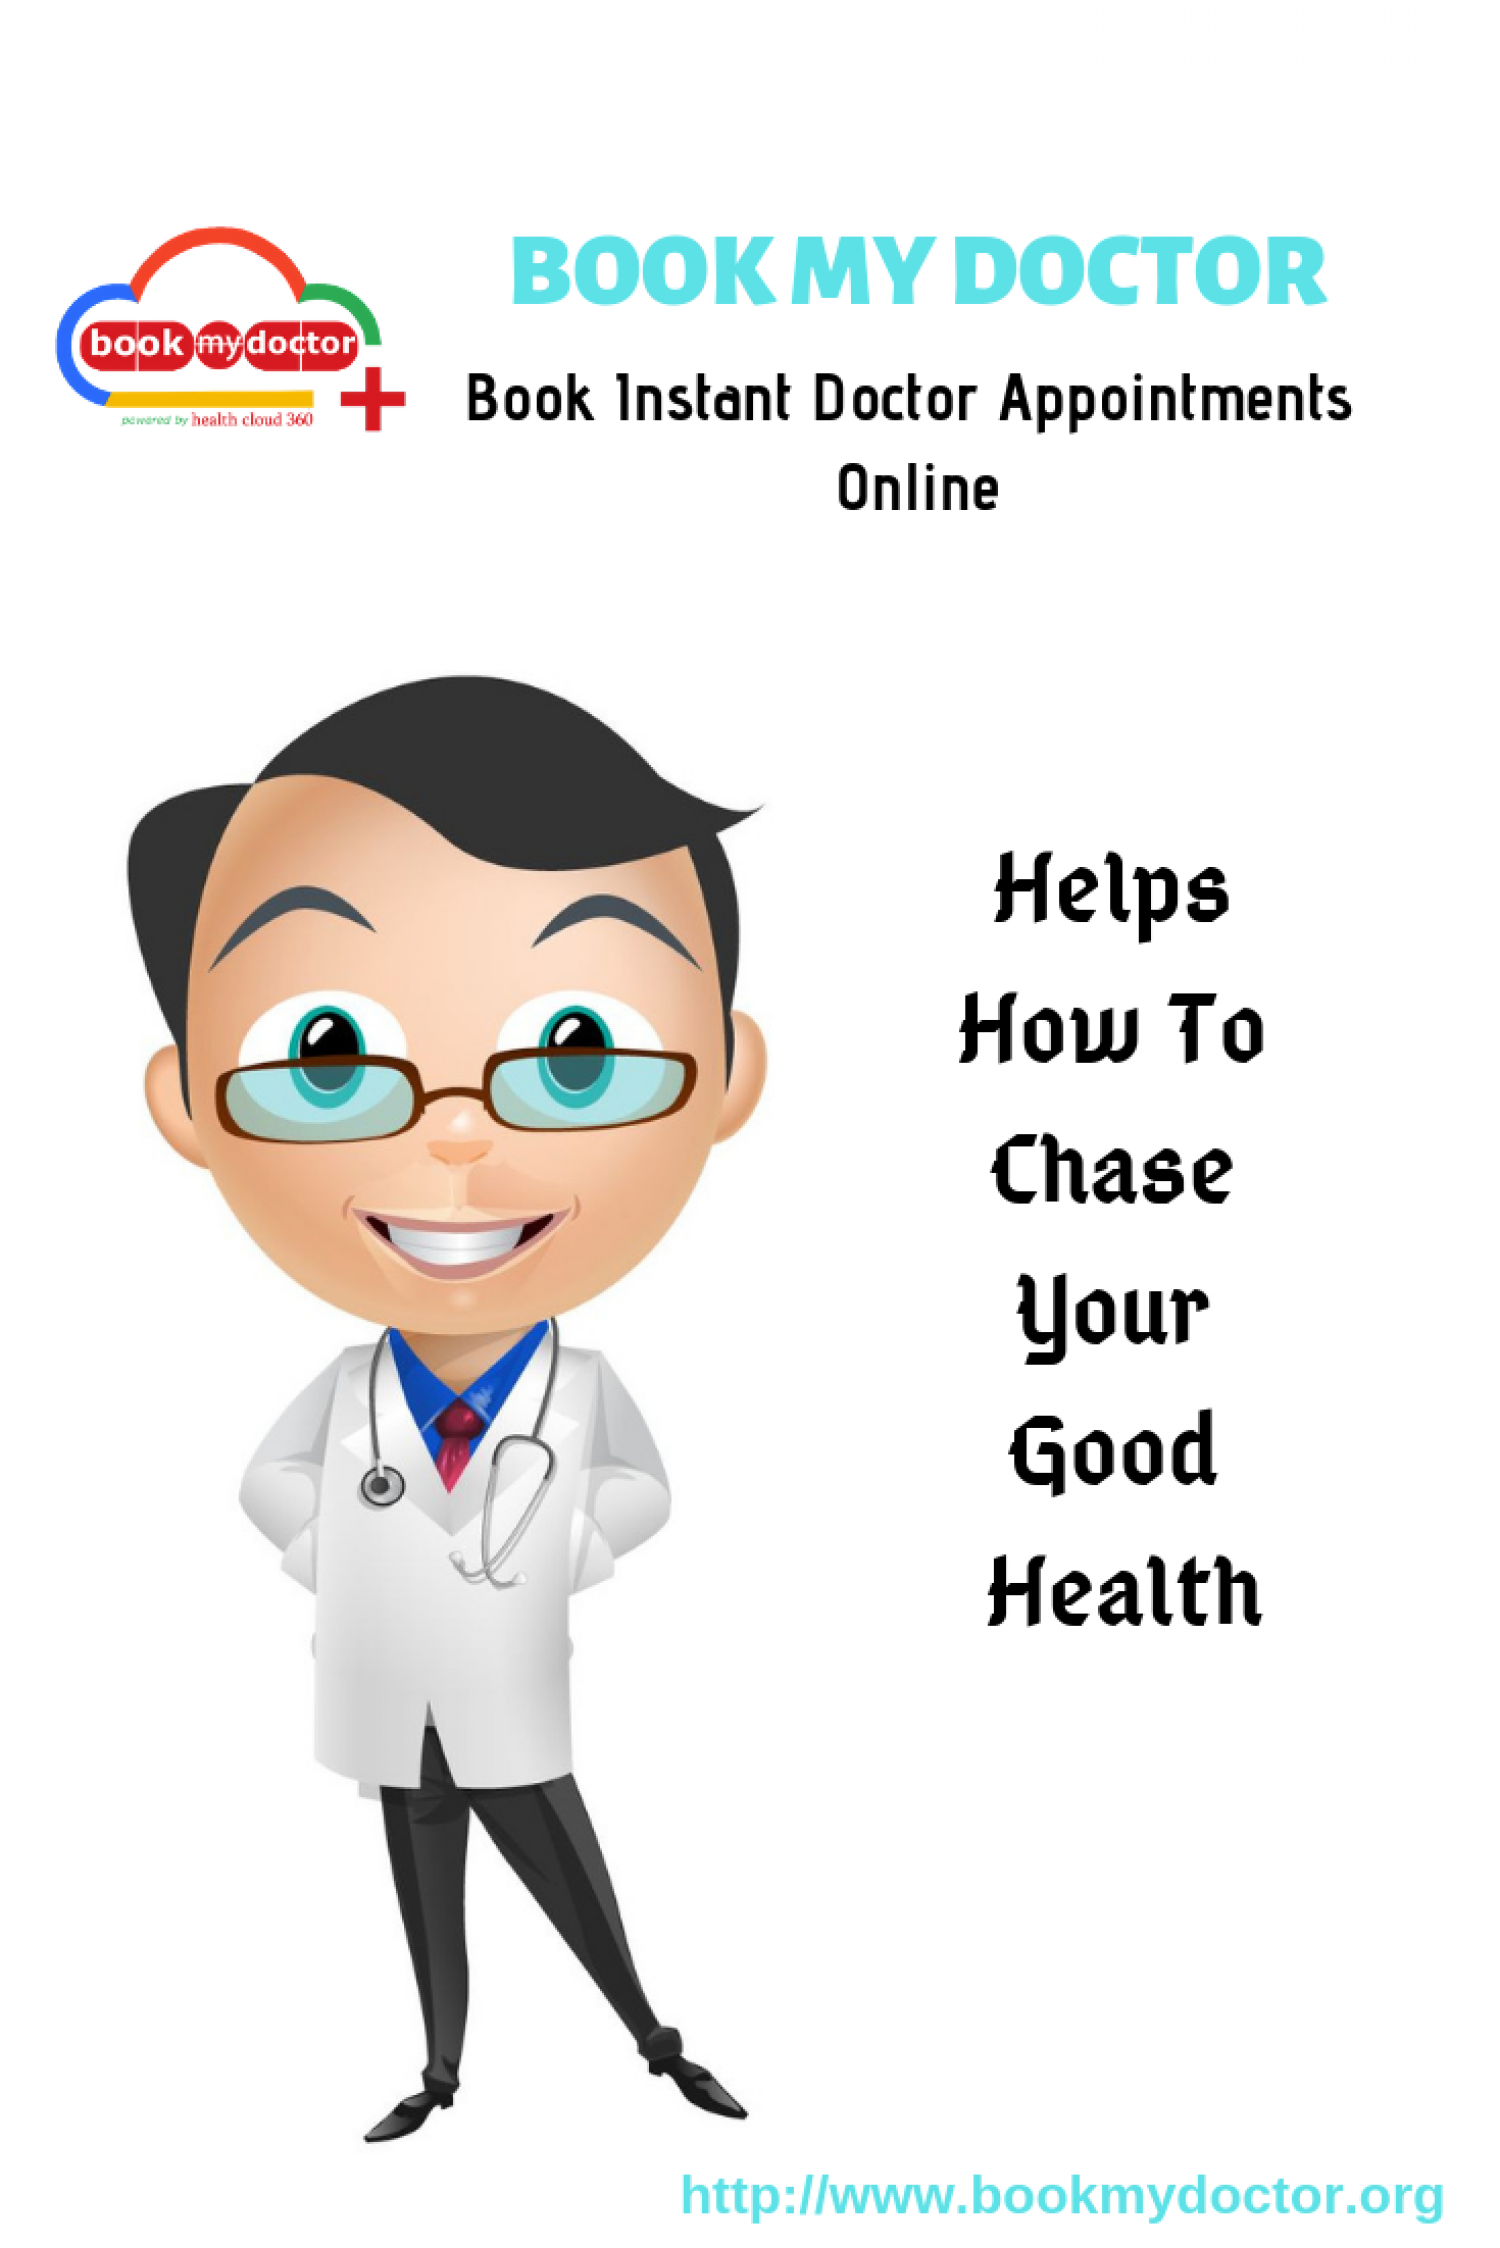 Book My Doctor: An Online Appointment Booking Service Infographic